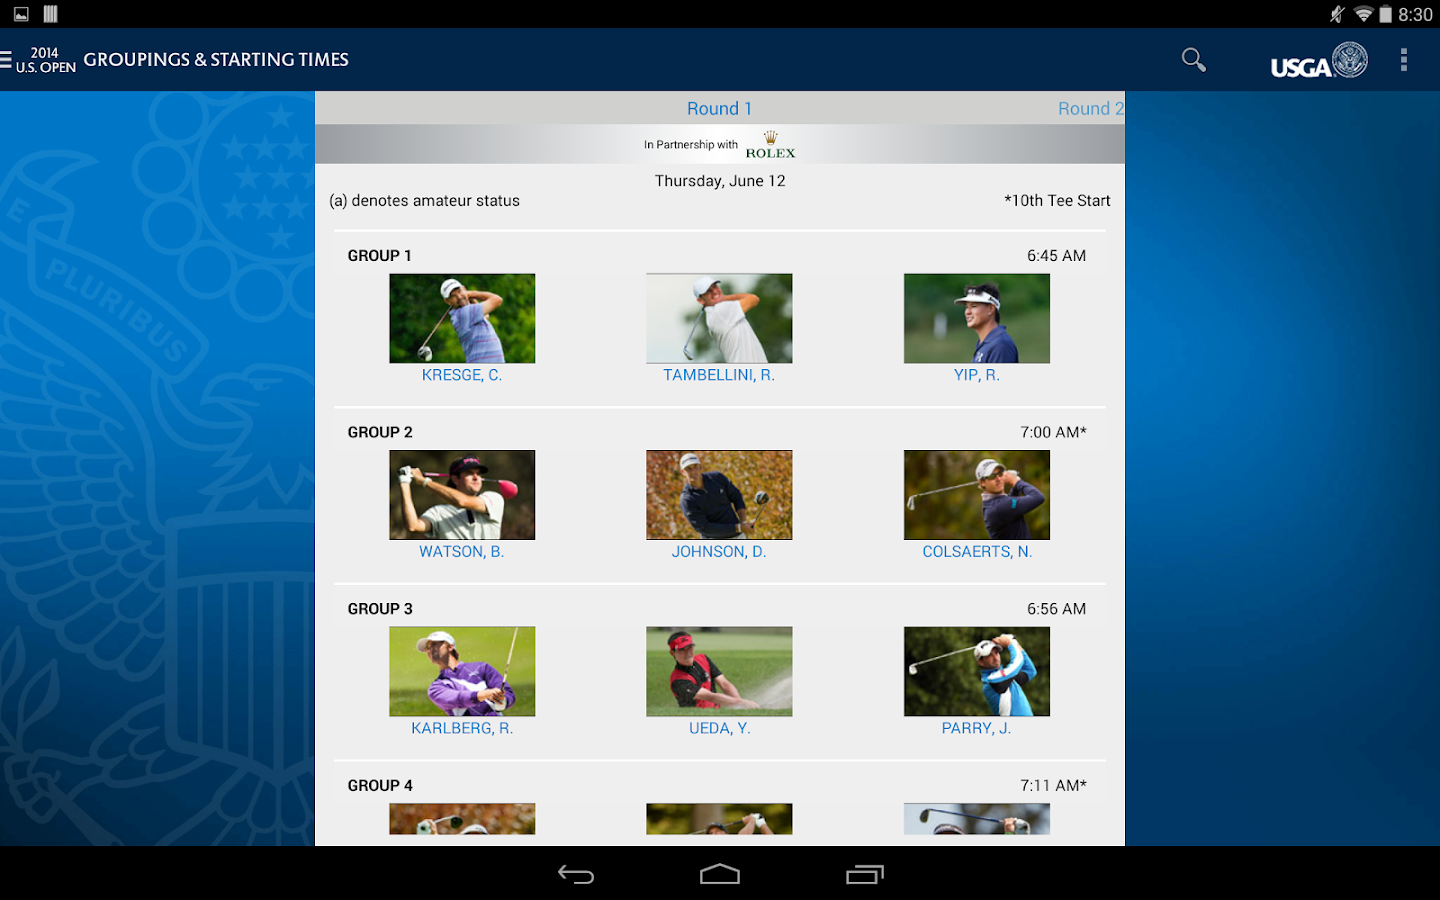 U.S. Open Golf Championship - screenshot